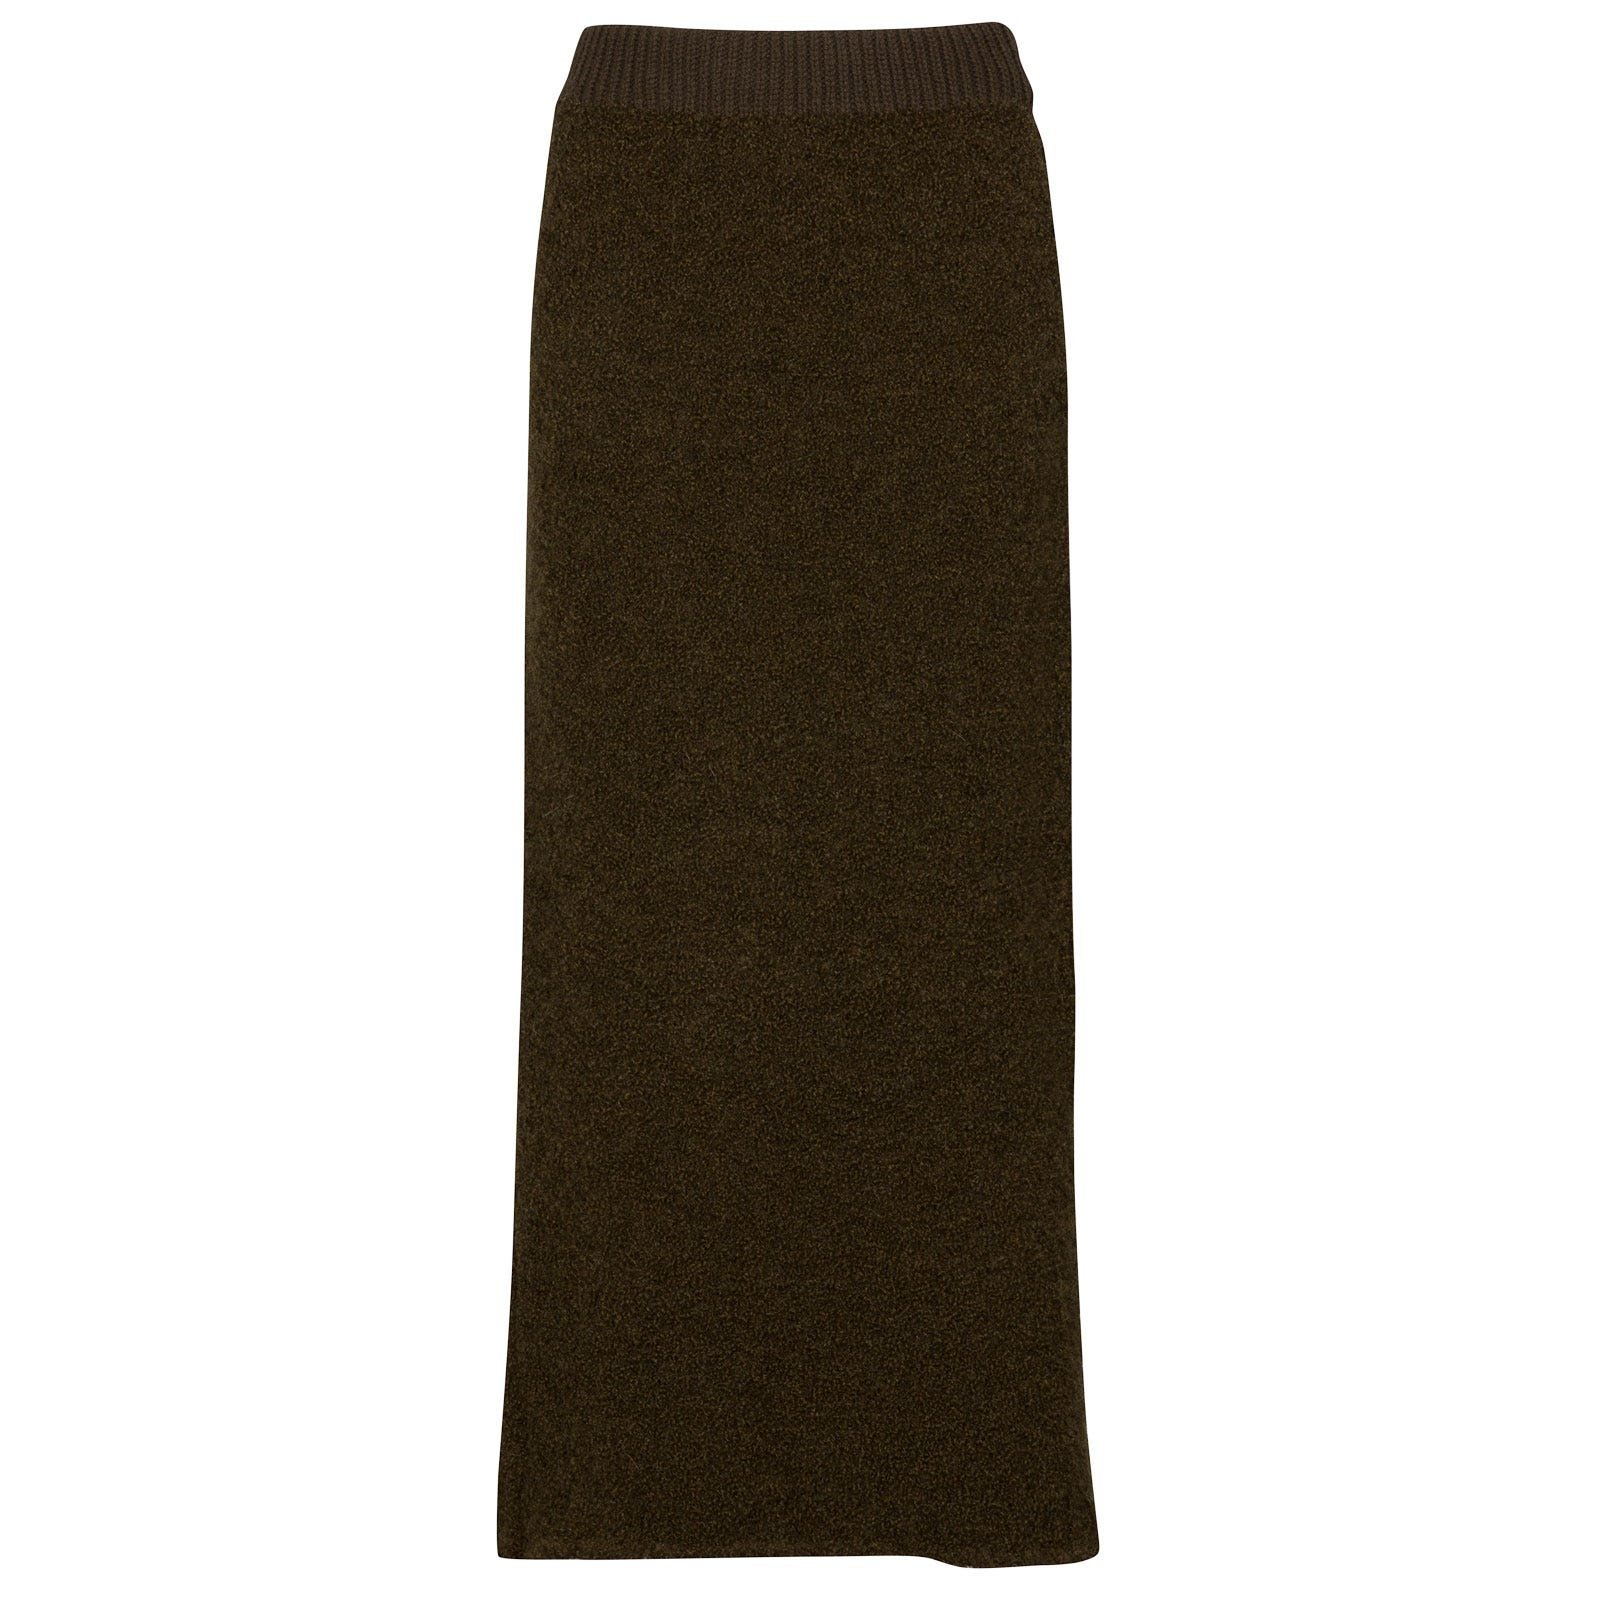 John Smedley orford Alpaca & Wool Skirt in Kielder Green-XL